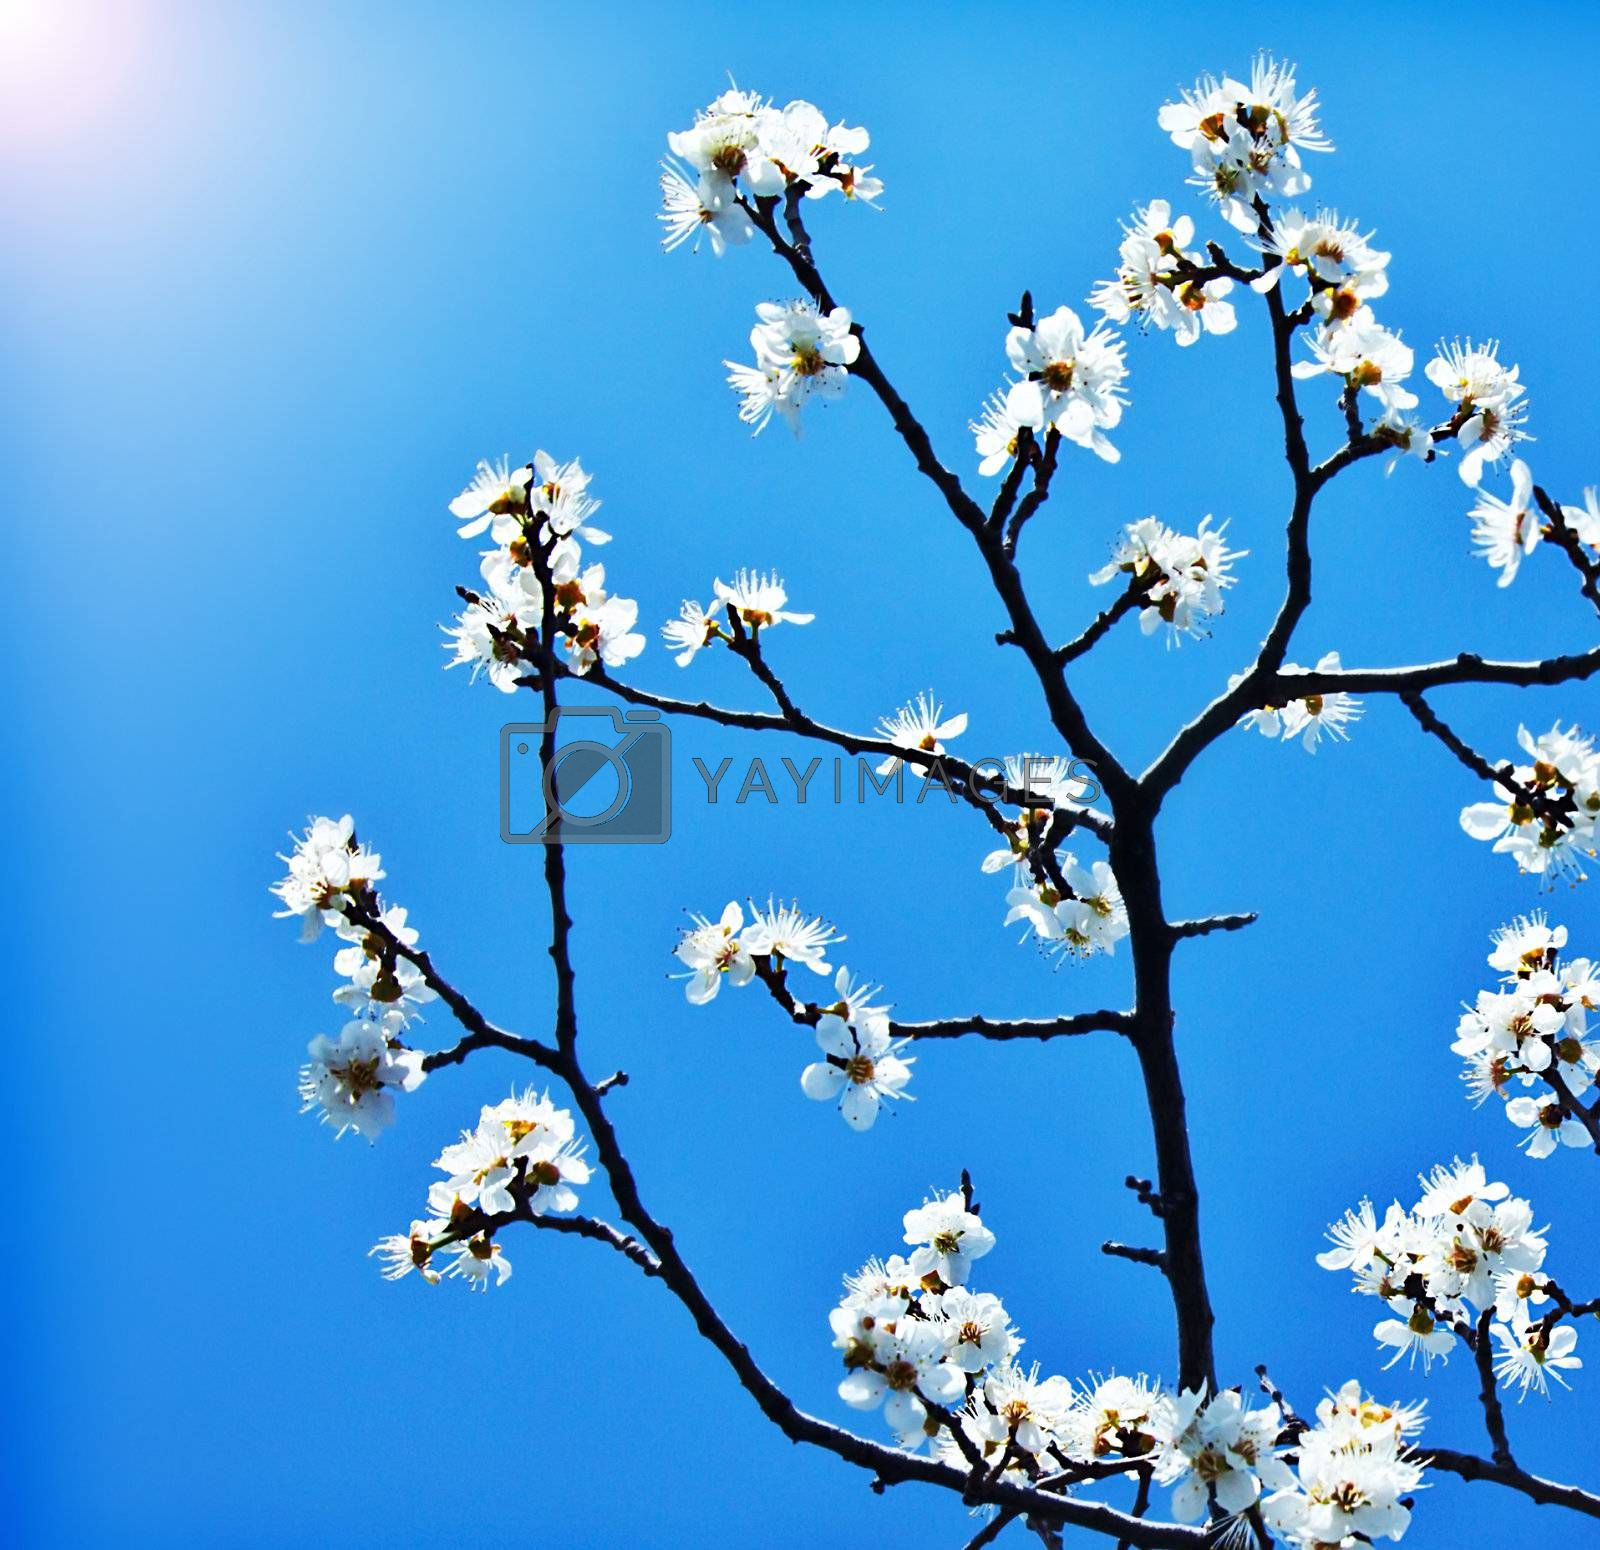 Blooming tree at spring, fresh white flowers on the branch of fruit tree over blue sky, plant blossom abstract floral background, seasonal nature beauty, springtime